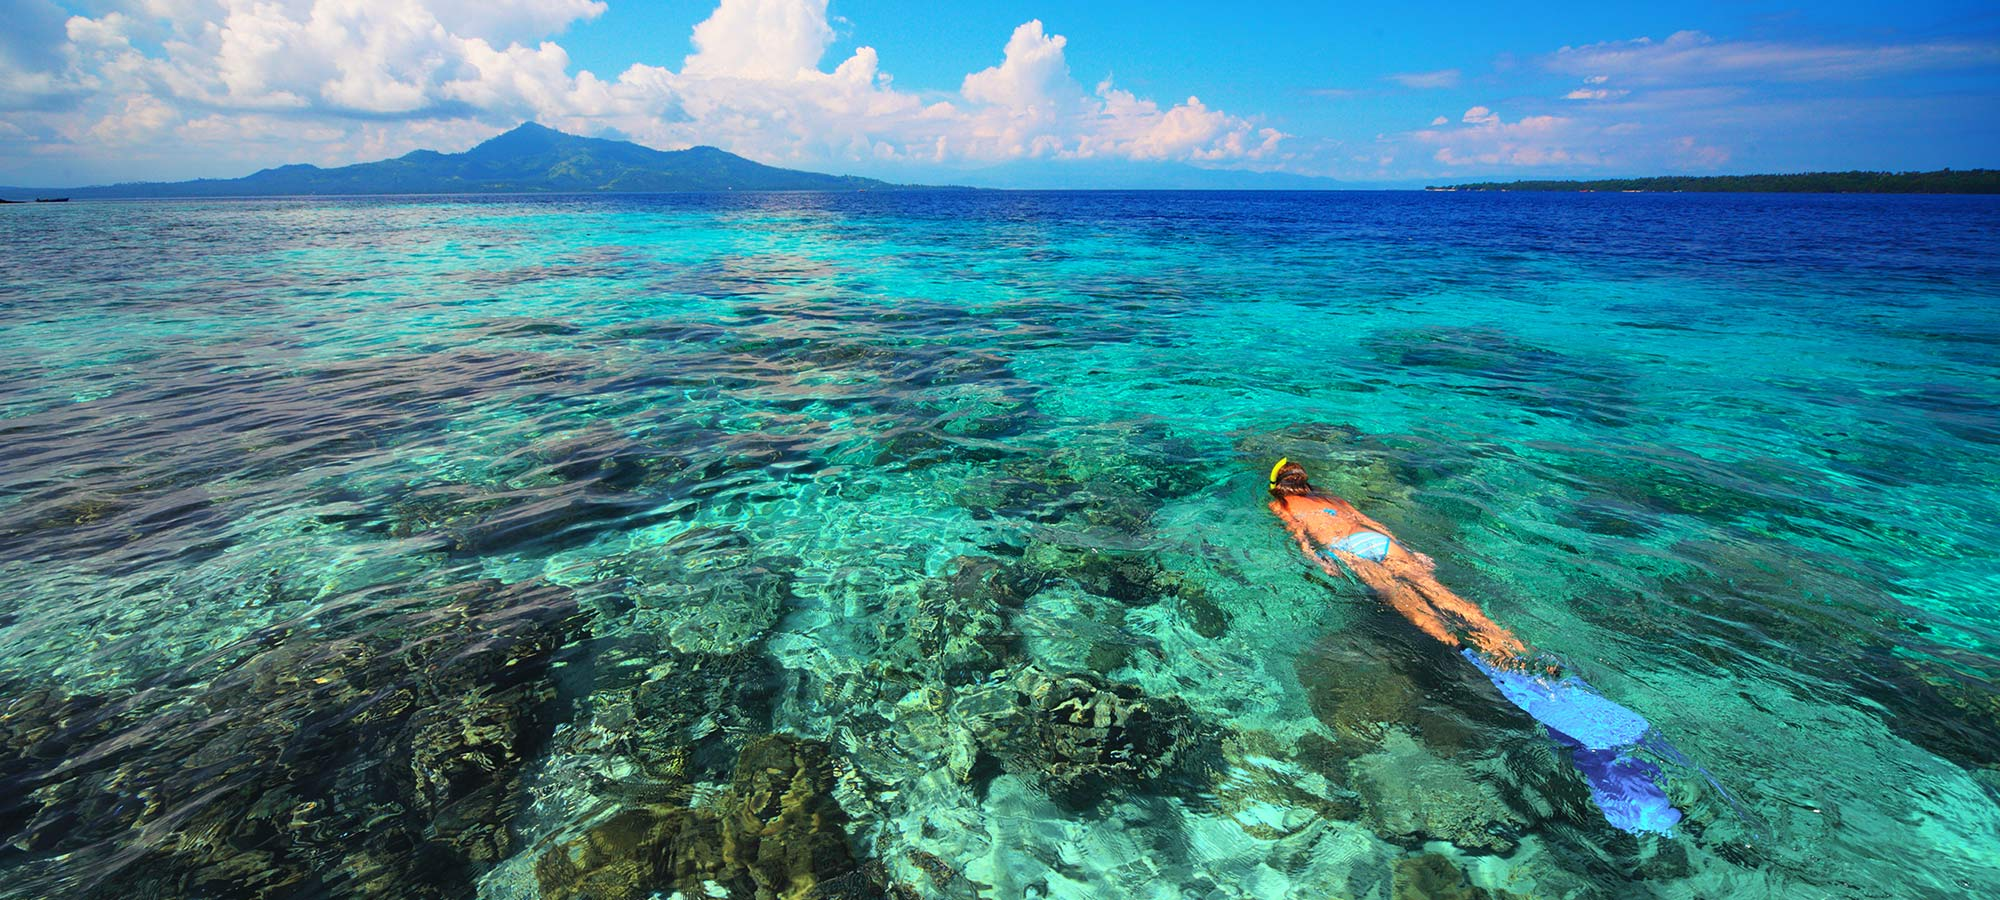 pictures The Best Snorkeling Spots in the World